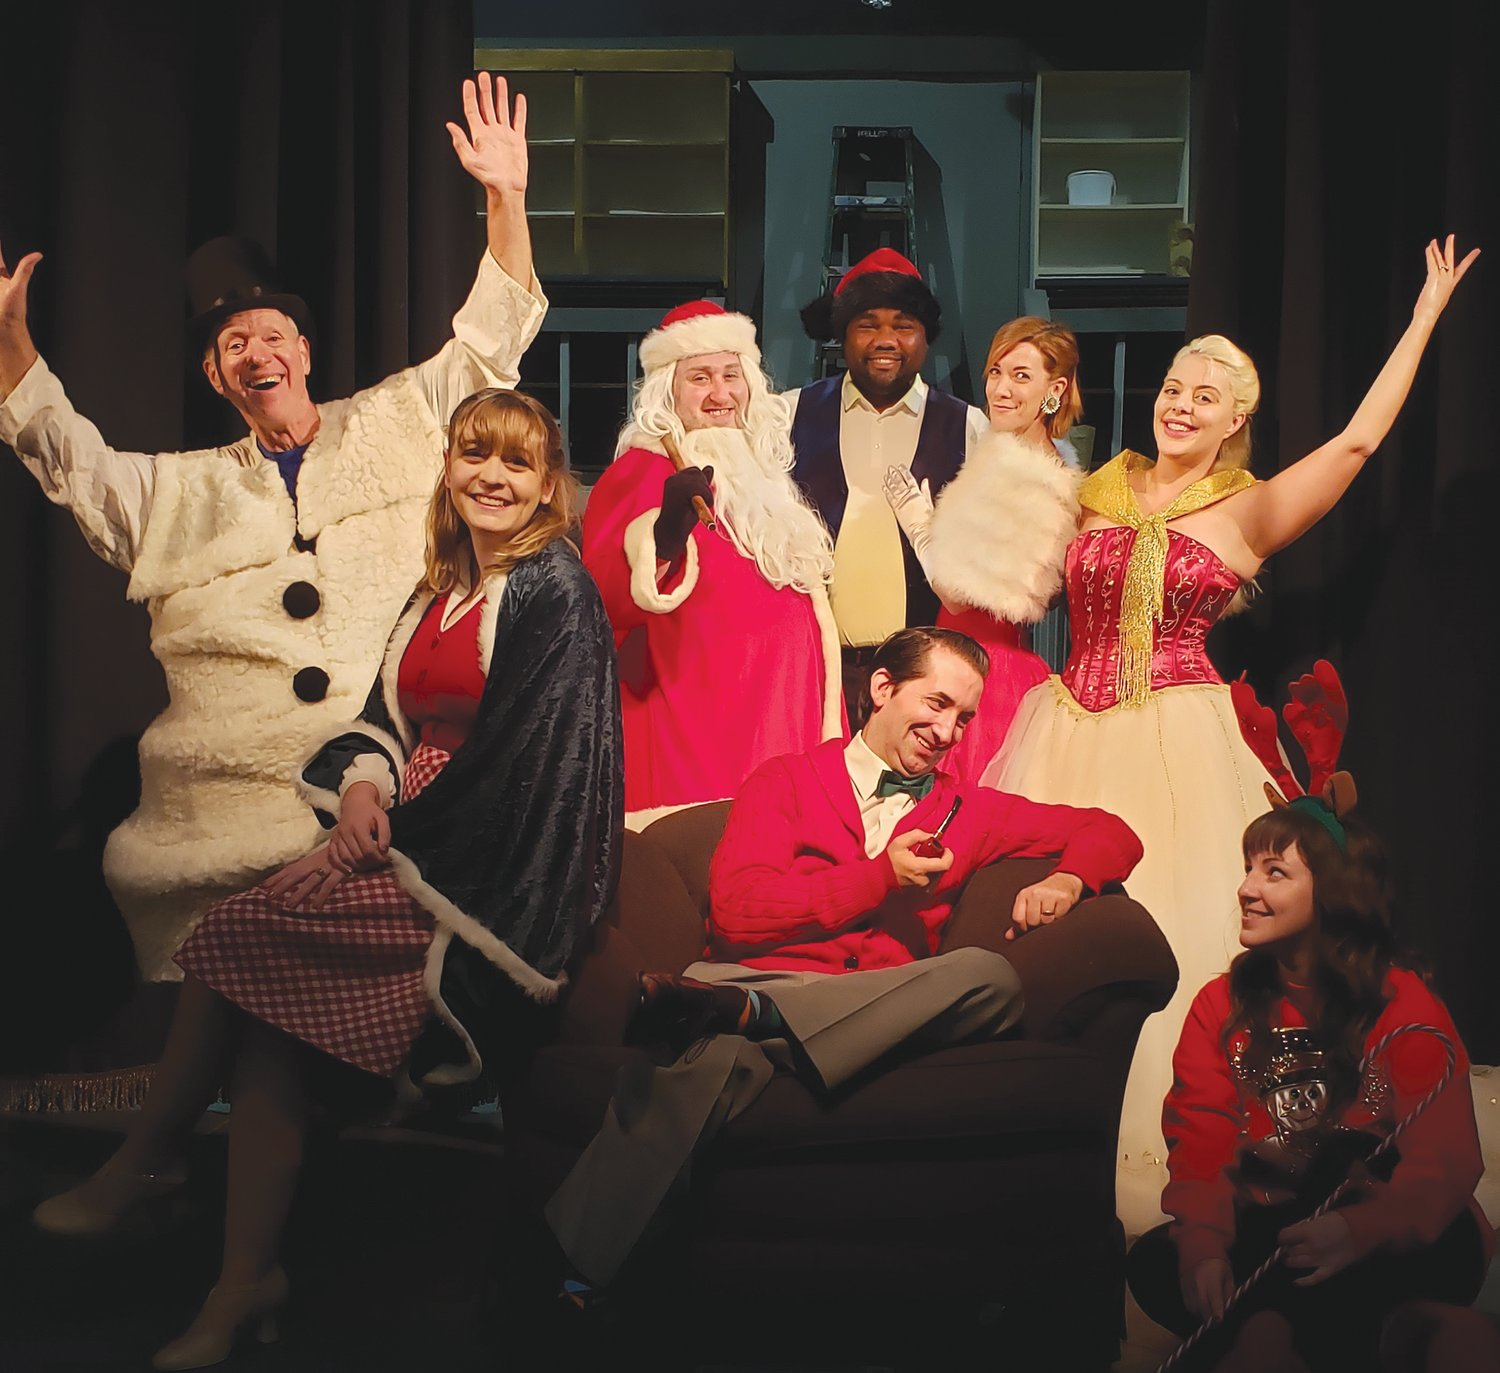 The cast gets ready for the merriment of a Christmas special, as Myers Dinner Theatre presents Hollywood Hearth and Home, a Christmas musical revue. Pictured, from left, standing are Don Hart, T.J. Bird, Kevin Ray Johnson, Sarah Hayes and Elsa Scott Besler; and seated are Rachel Henry Johnson, Thomas J. Besler and Lauren Morgan. The show opens Friday and continues through Dec. 20.